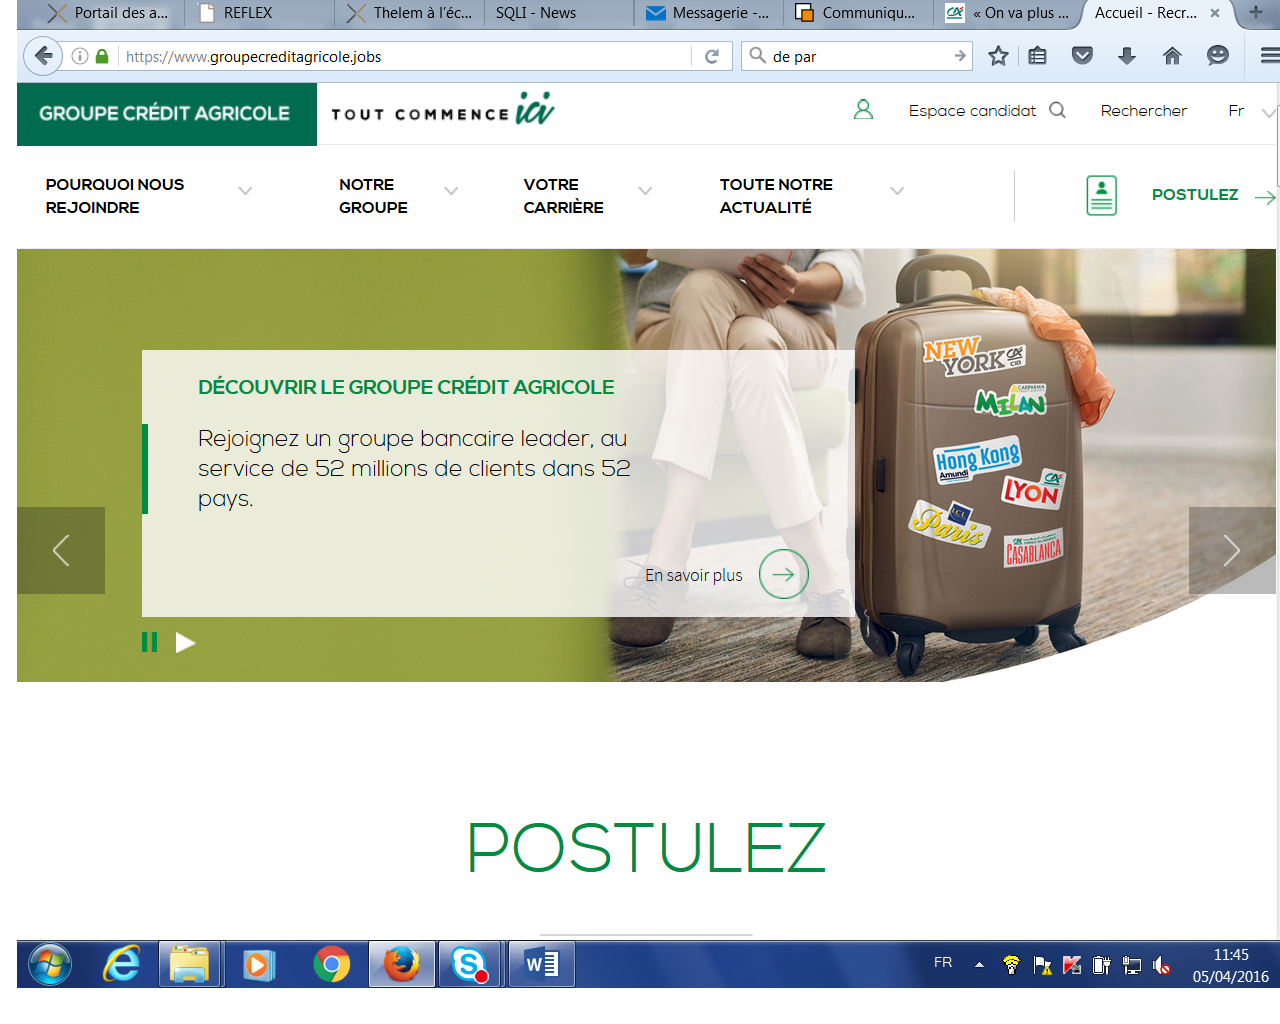 groupe credit agricole